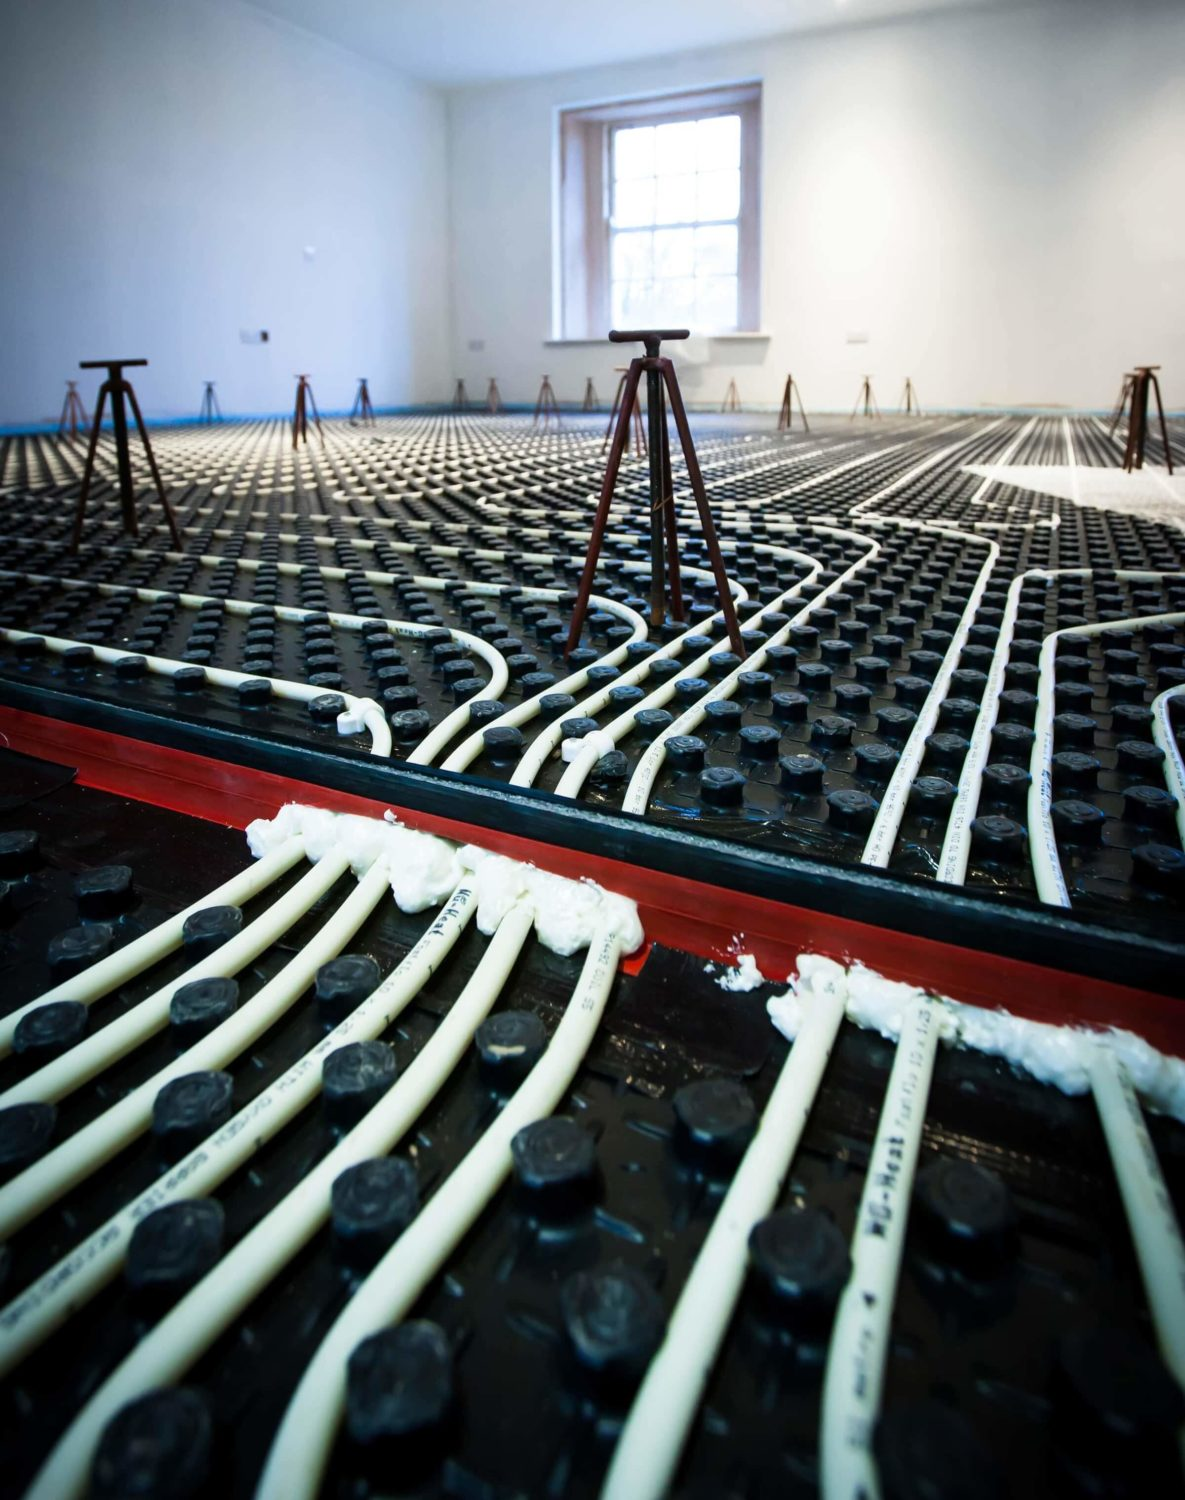 Underfloor heating expansion joints